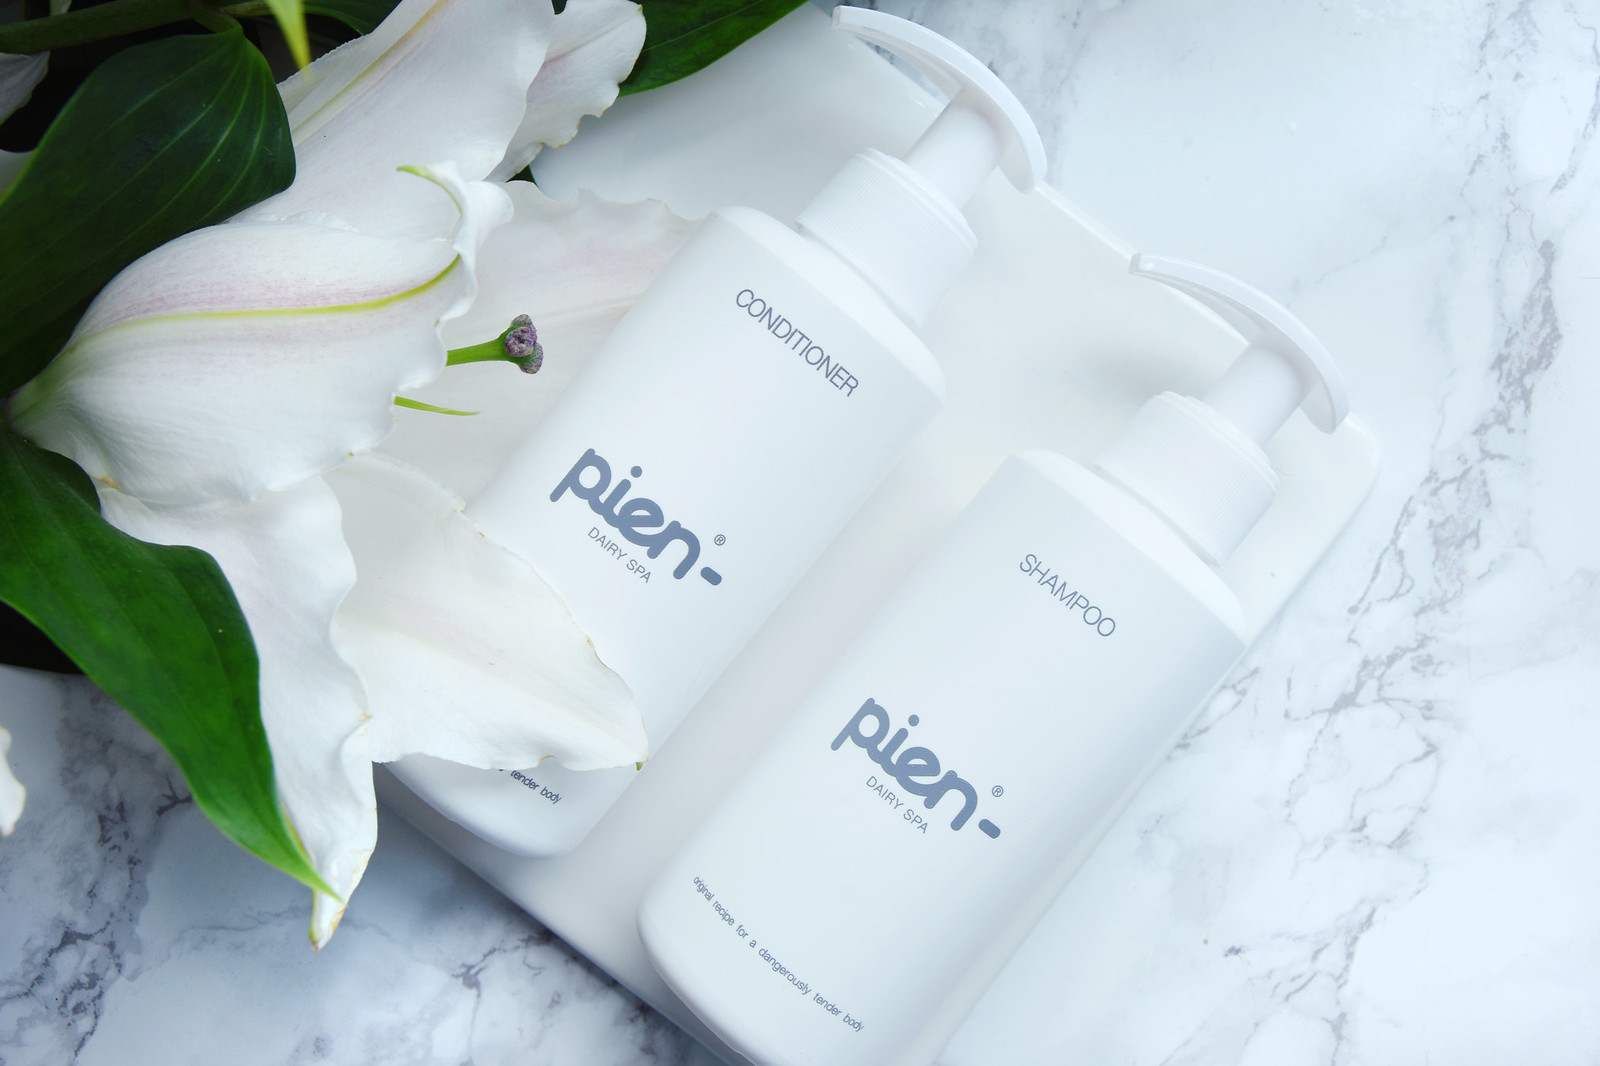 Pien conditioner review